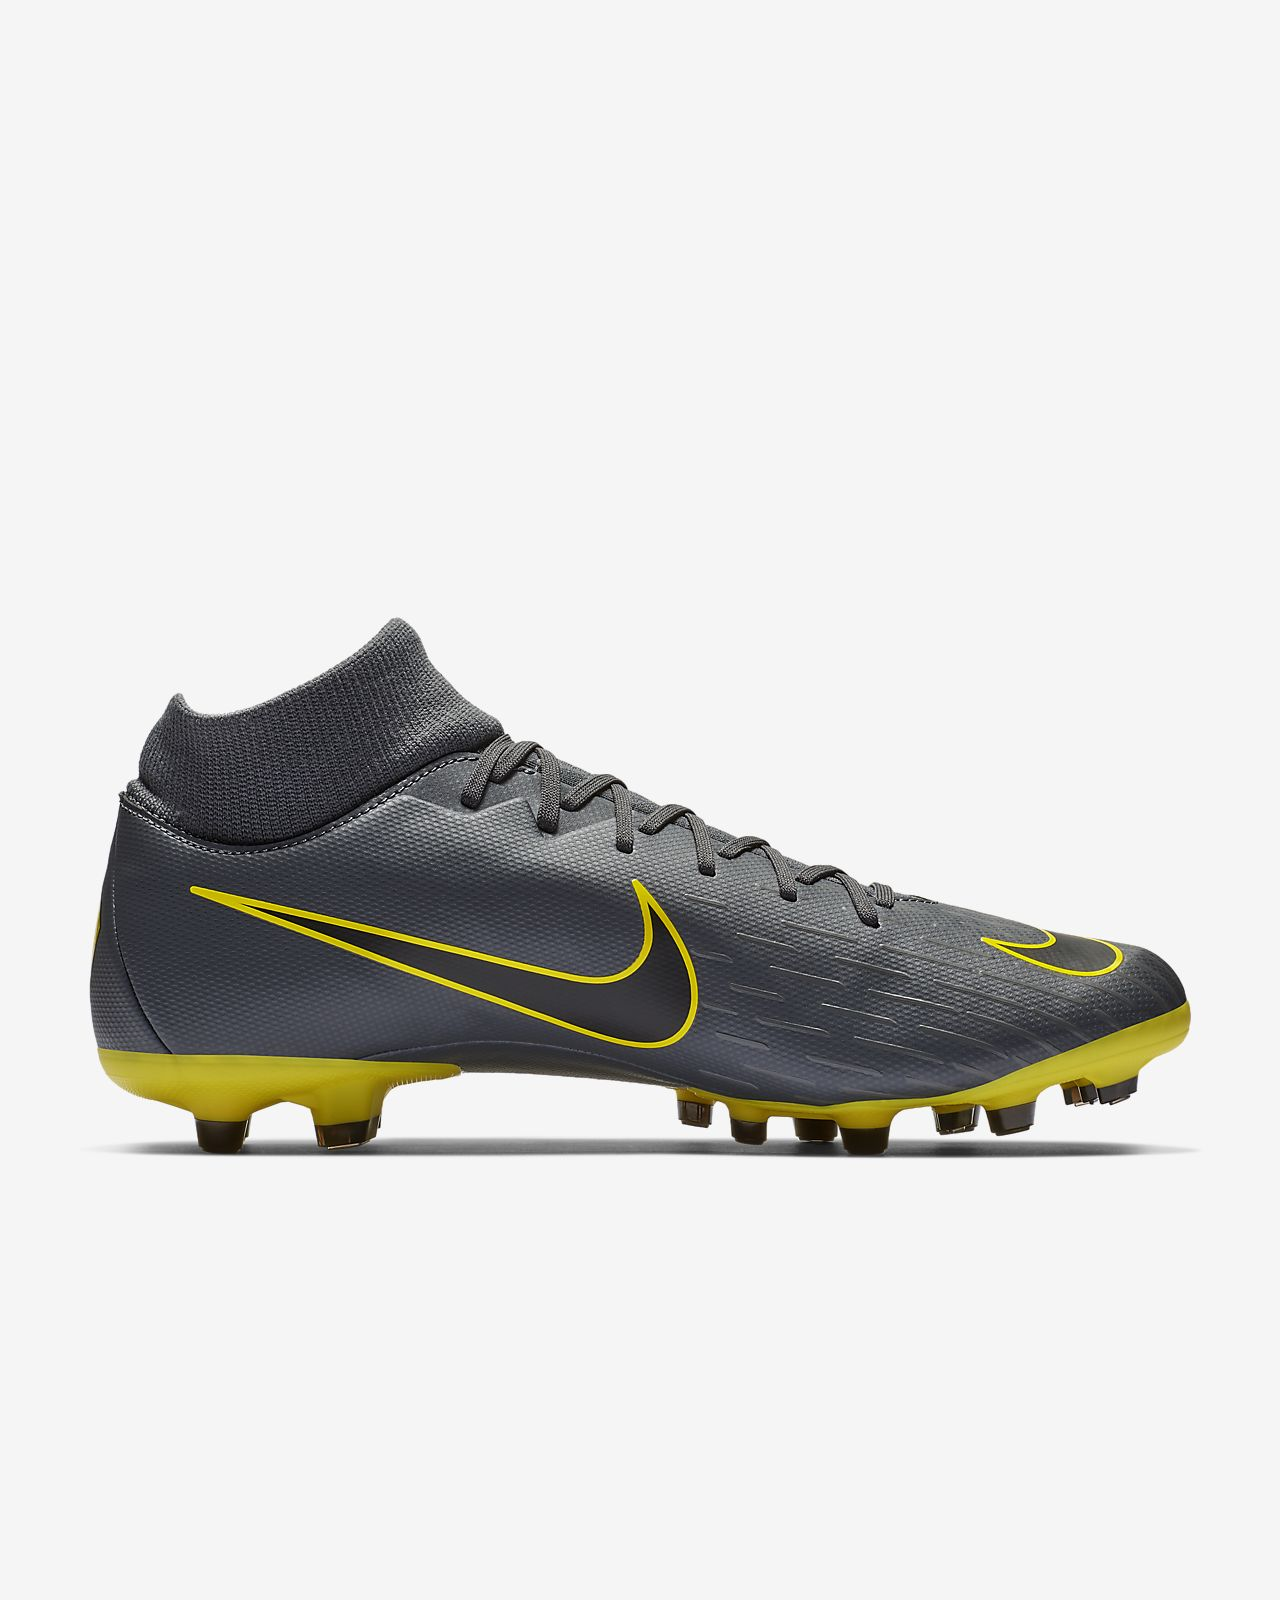 0e58886158f9c ... Nike Mercurial Superfly 6 Academy MG Botas de fútbol para múltiples  superficies